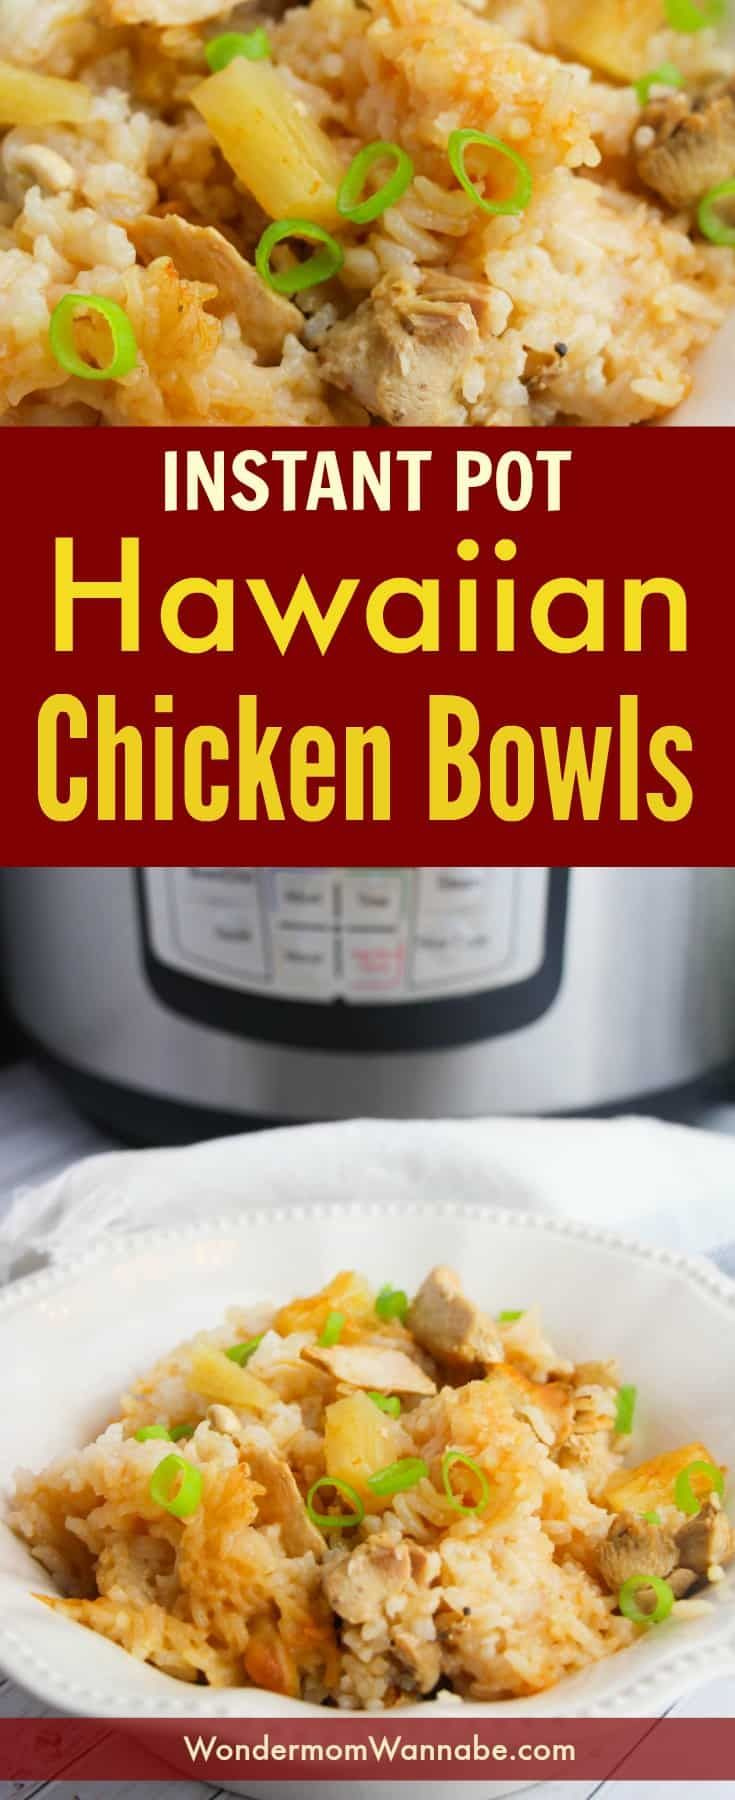 These Instant Pot Hawaiian Chicken Bowls Are One Of The Most Requested Dinners By My Kids They